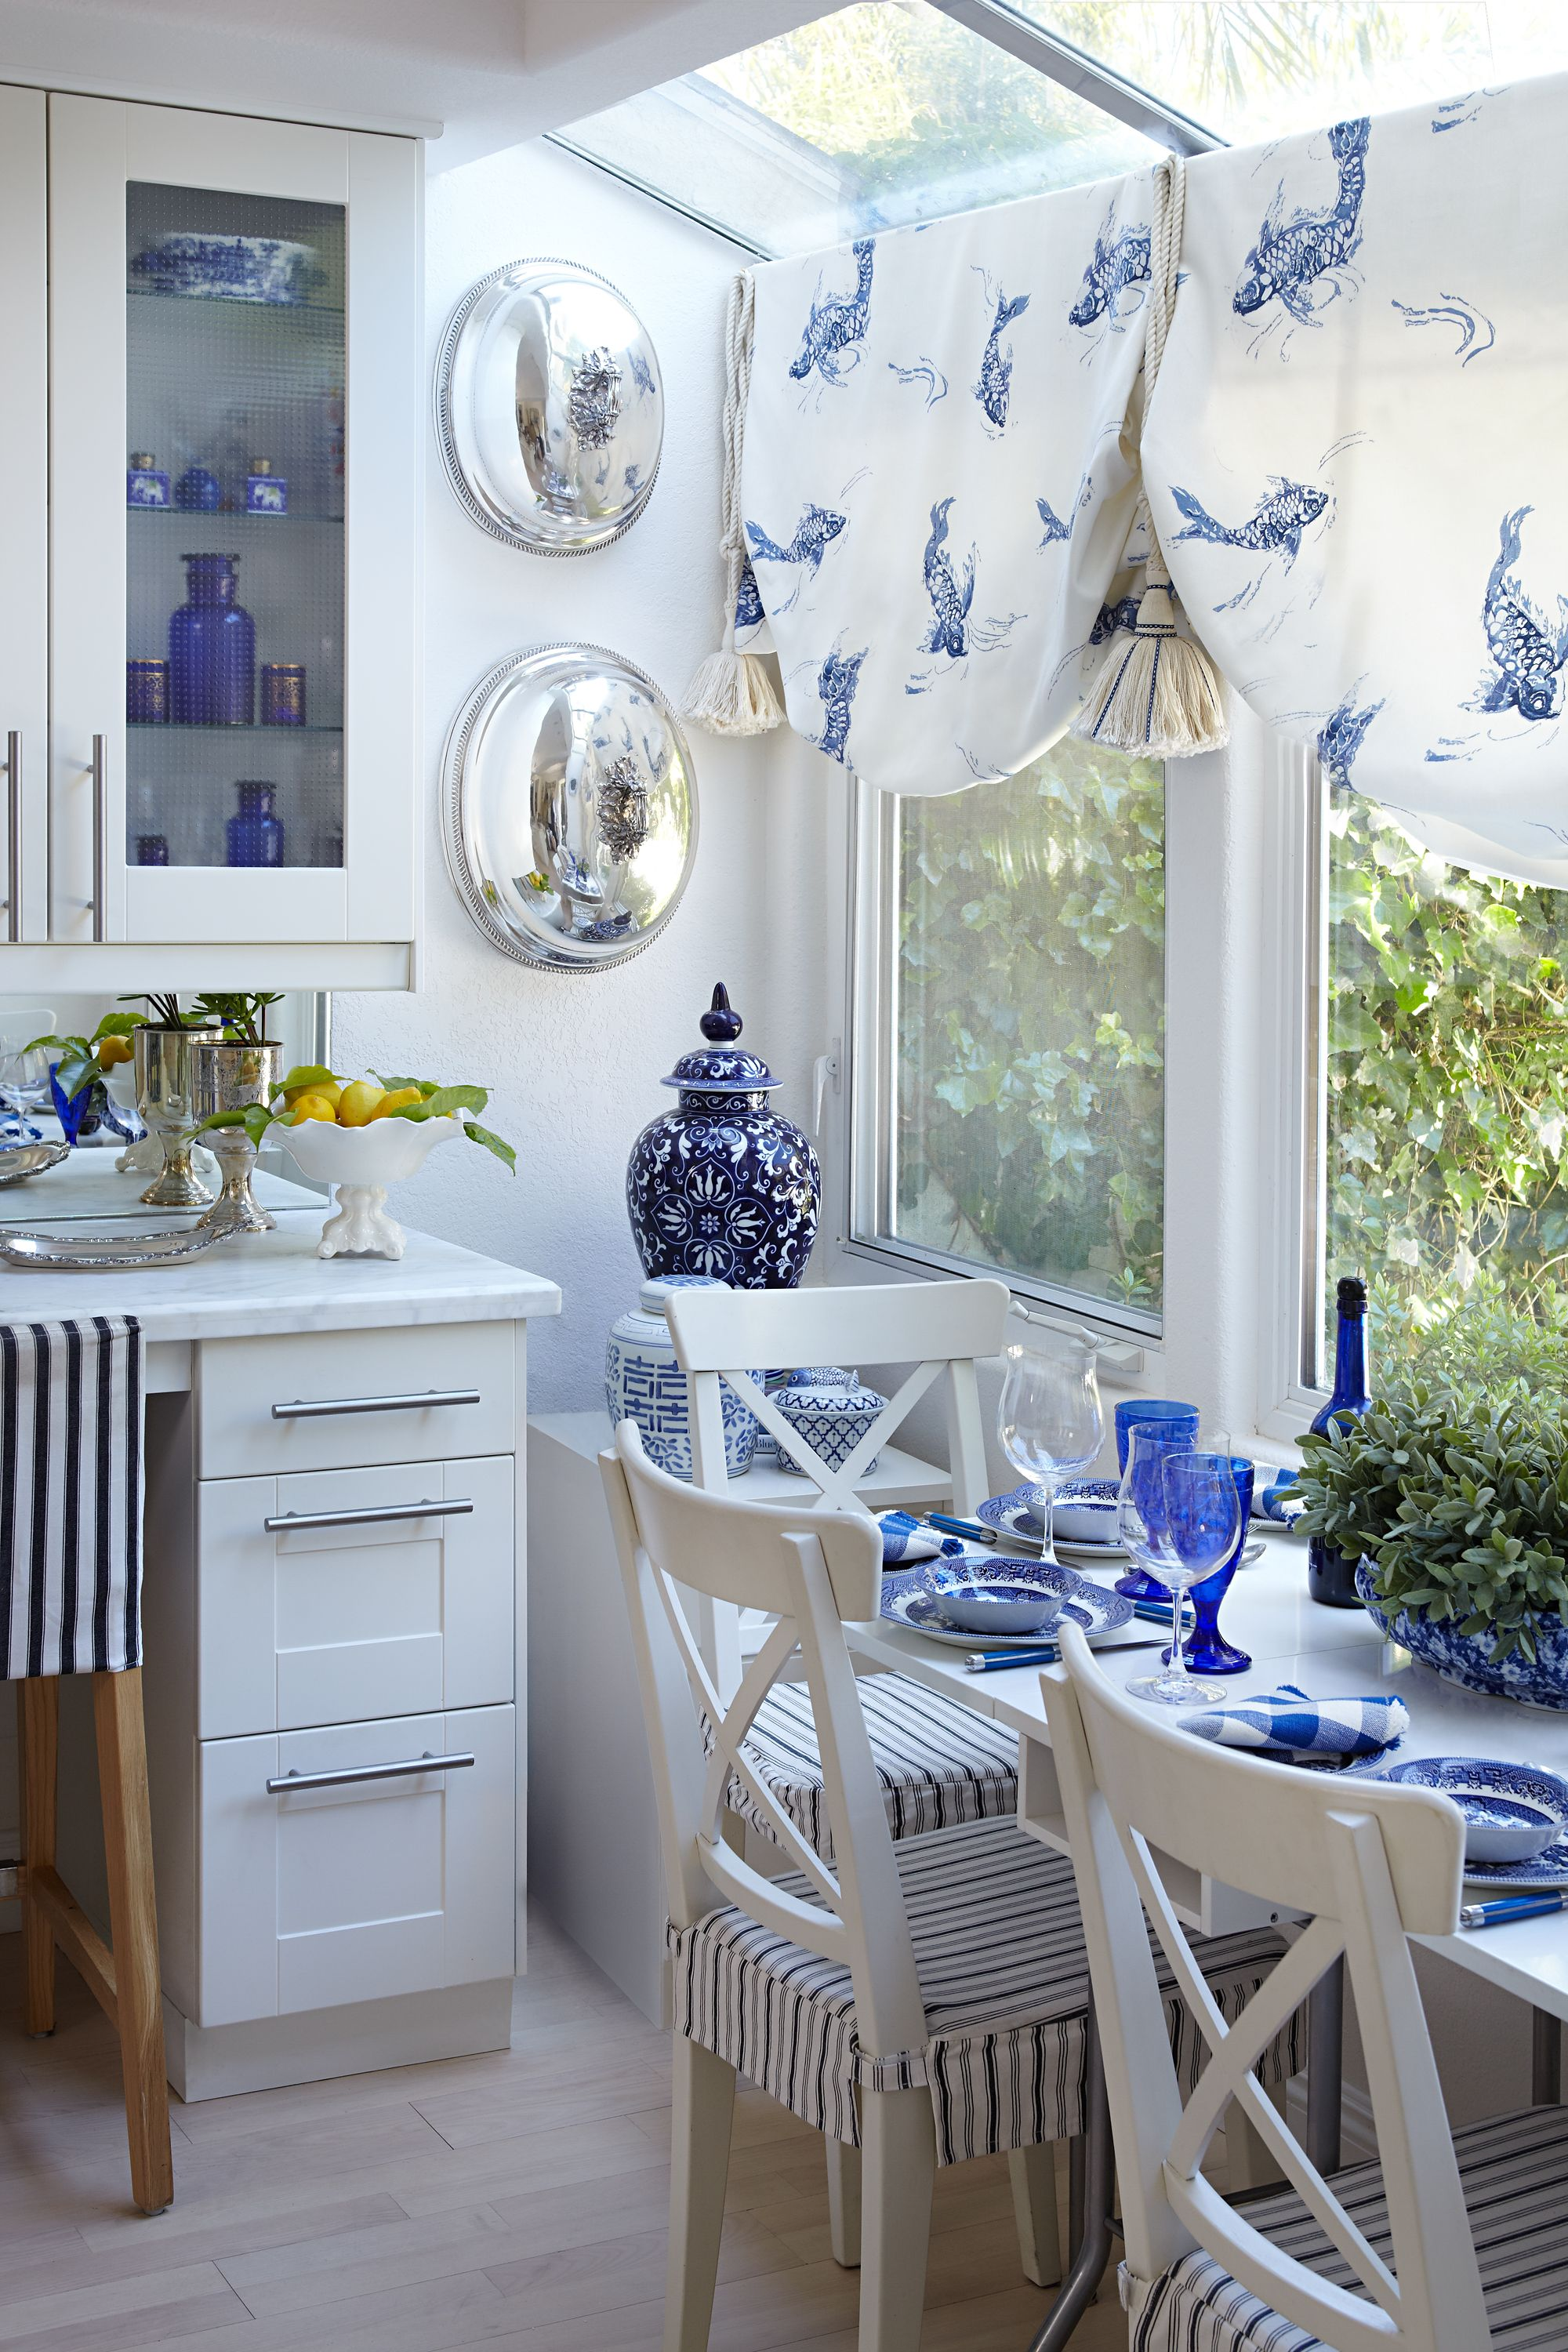 Seaside kitchen nook ~ check out the balloon with fish ...